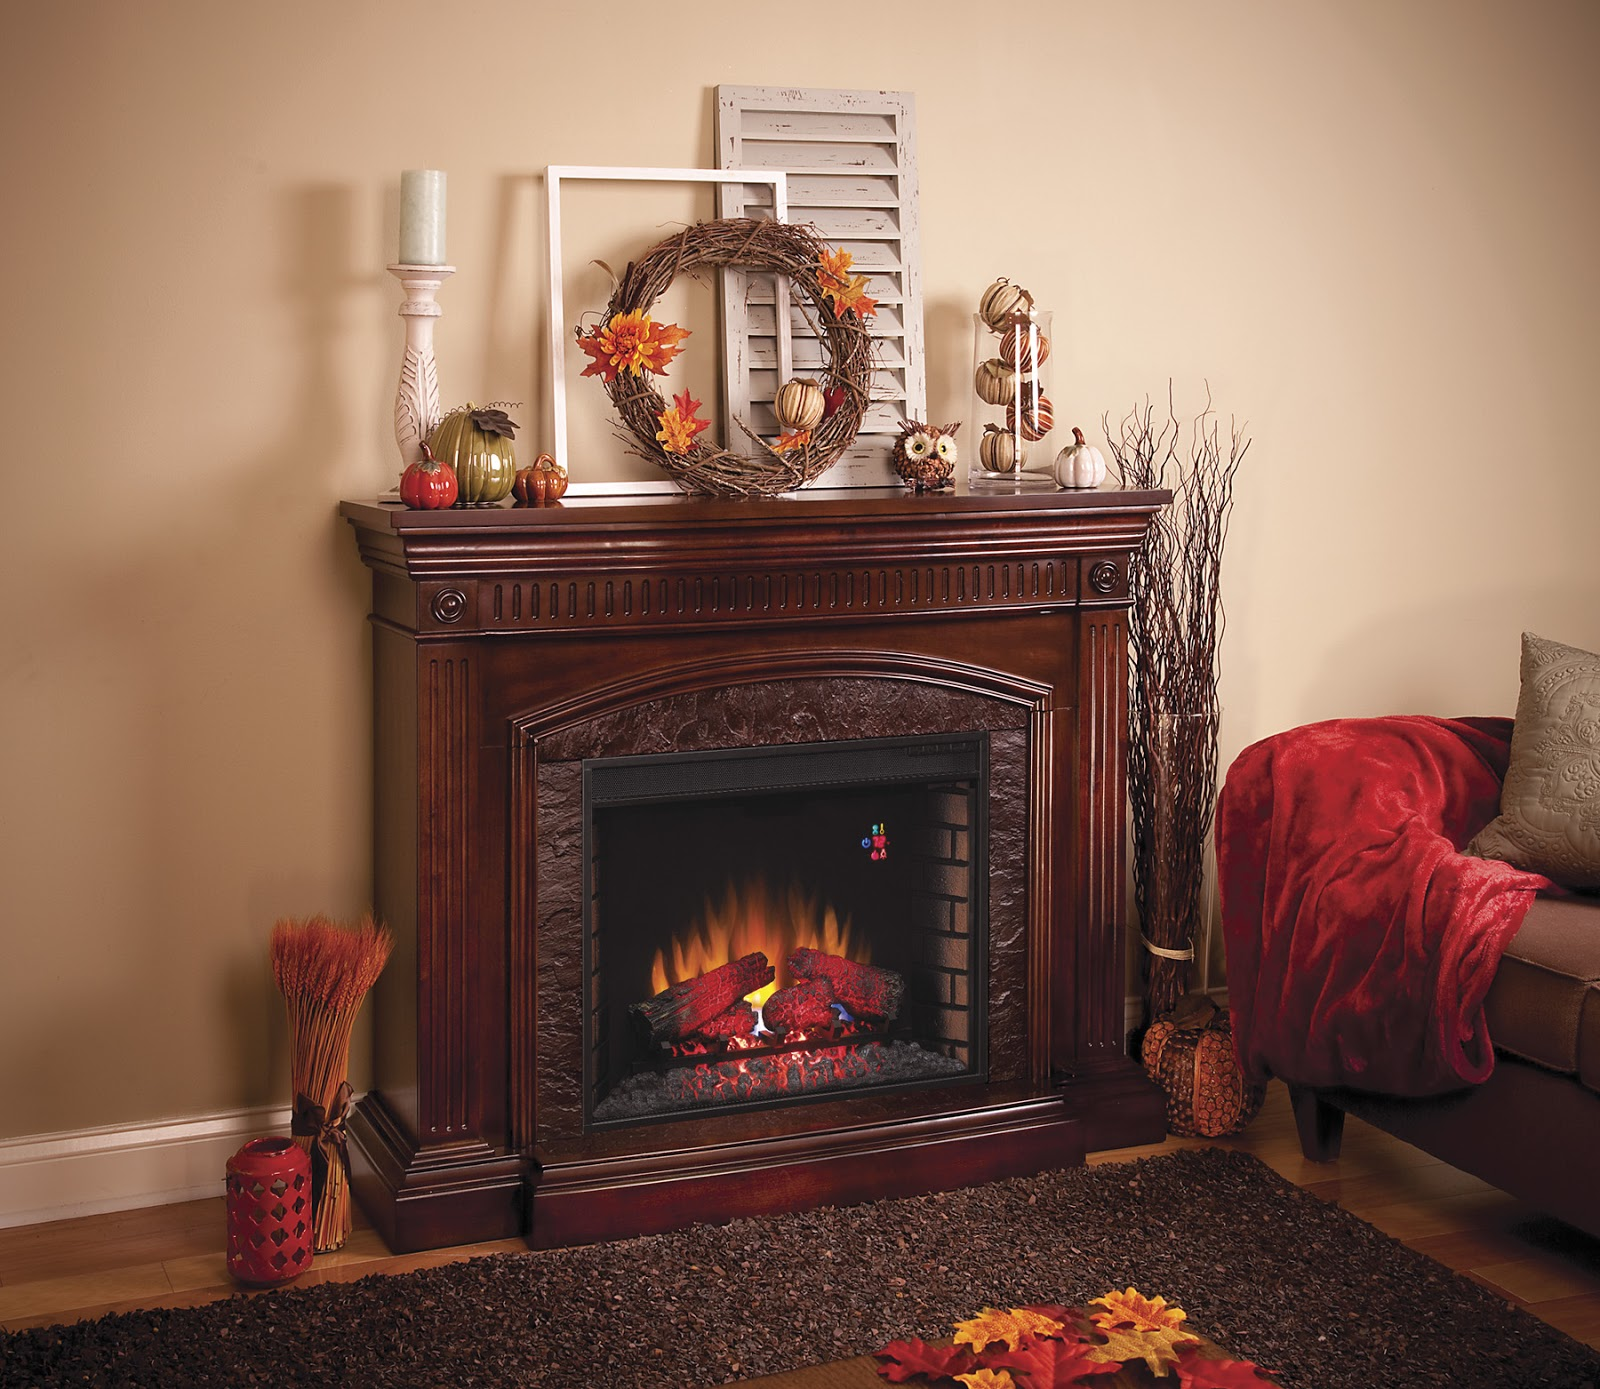 TwinStar International: Autumn Mantel Decorating Tips